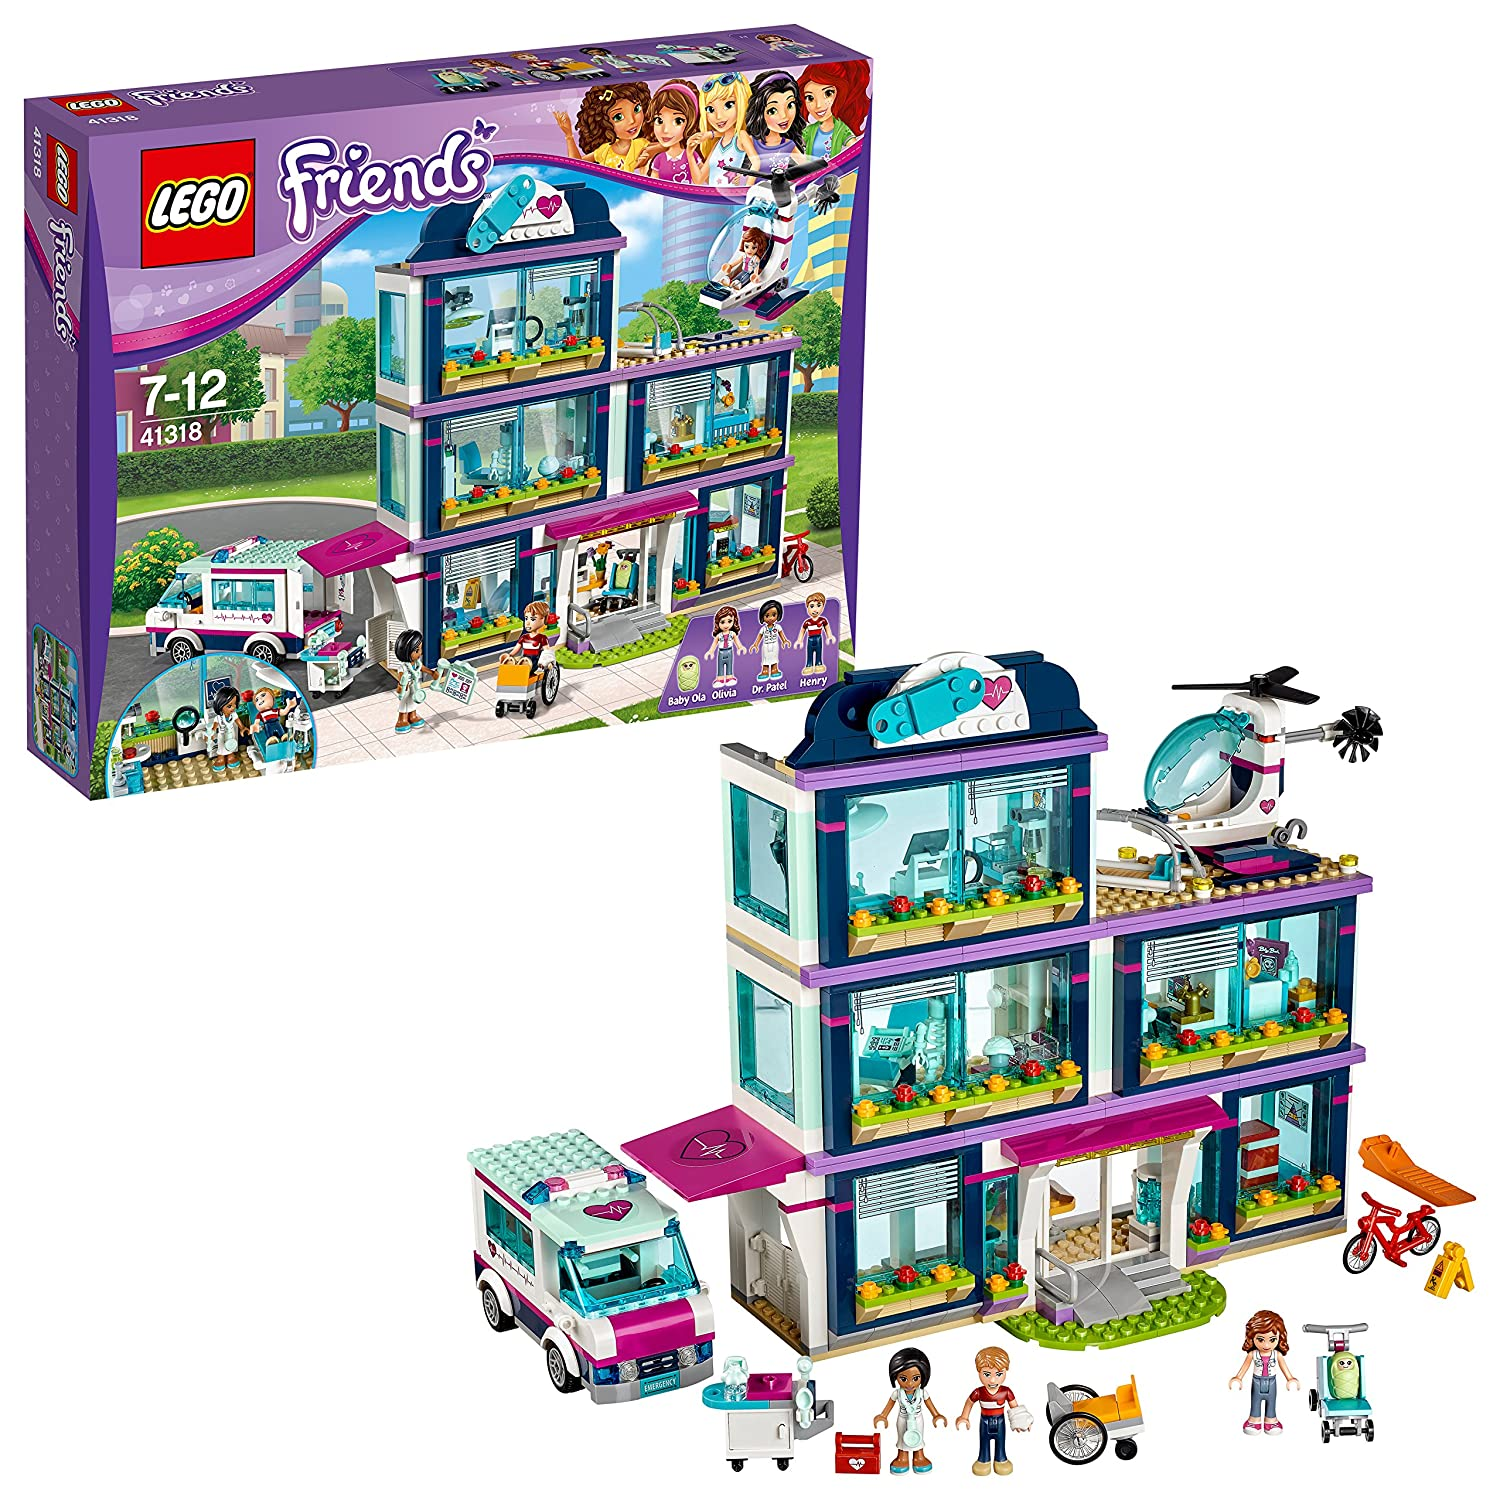 LEGO Friends - Le catamaran - 41317 - Jeu de Construction